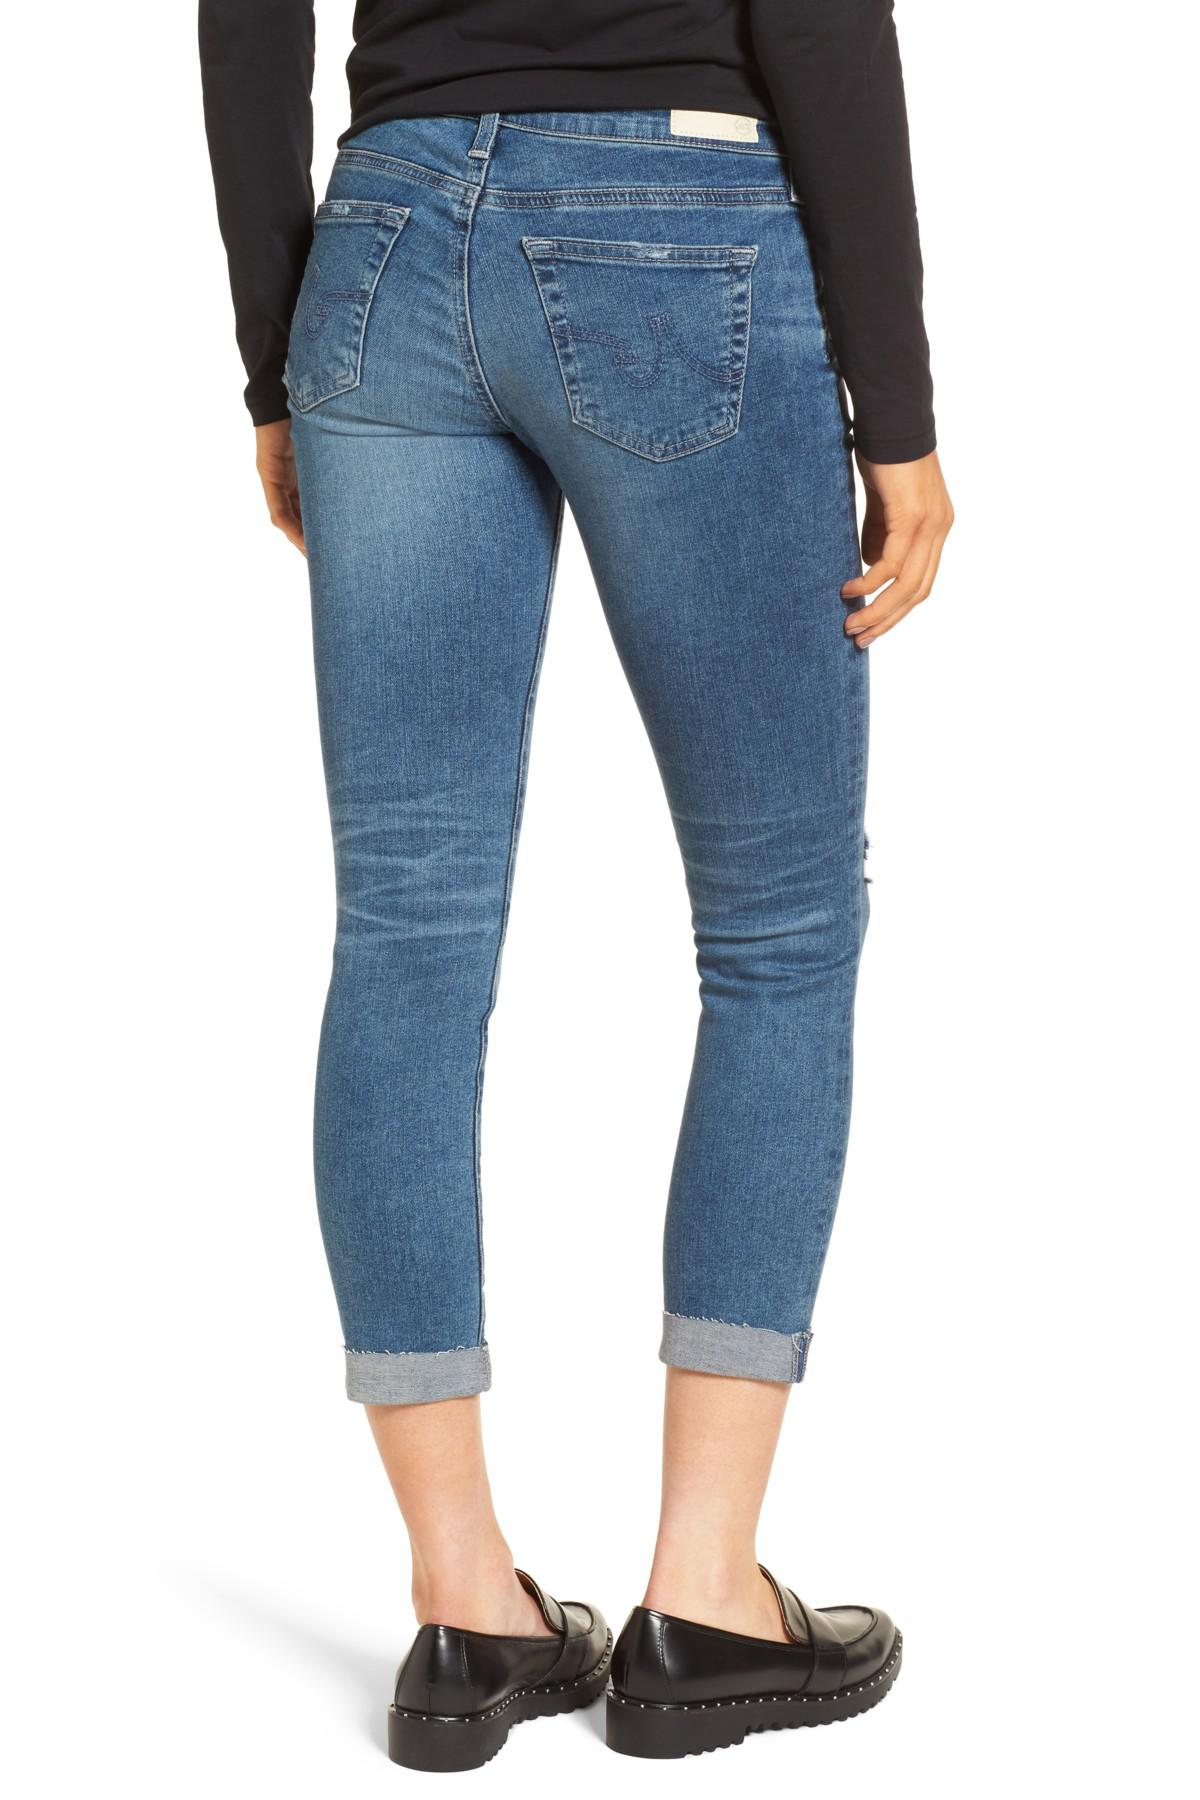 distressed cropped jeans - Blue AG - Adriano Goldschmied suifBE1R92